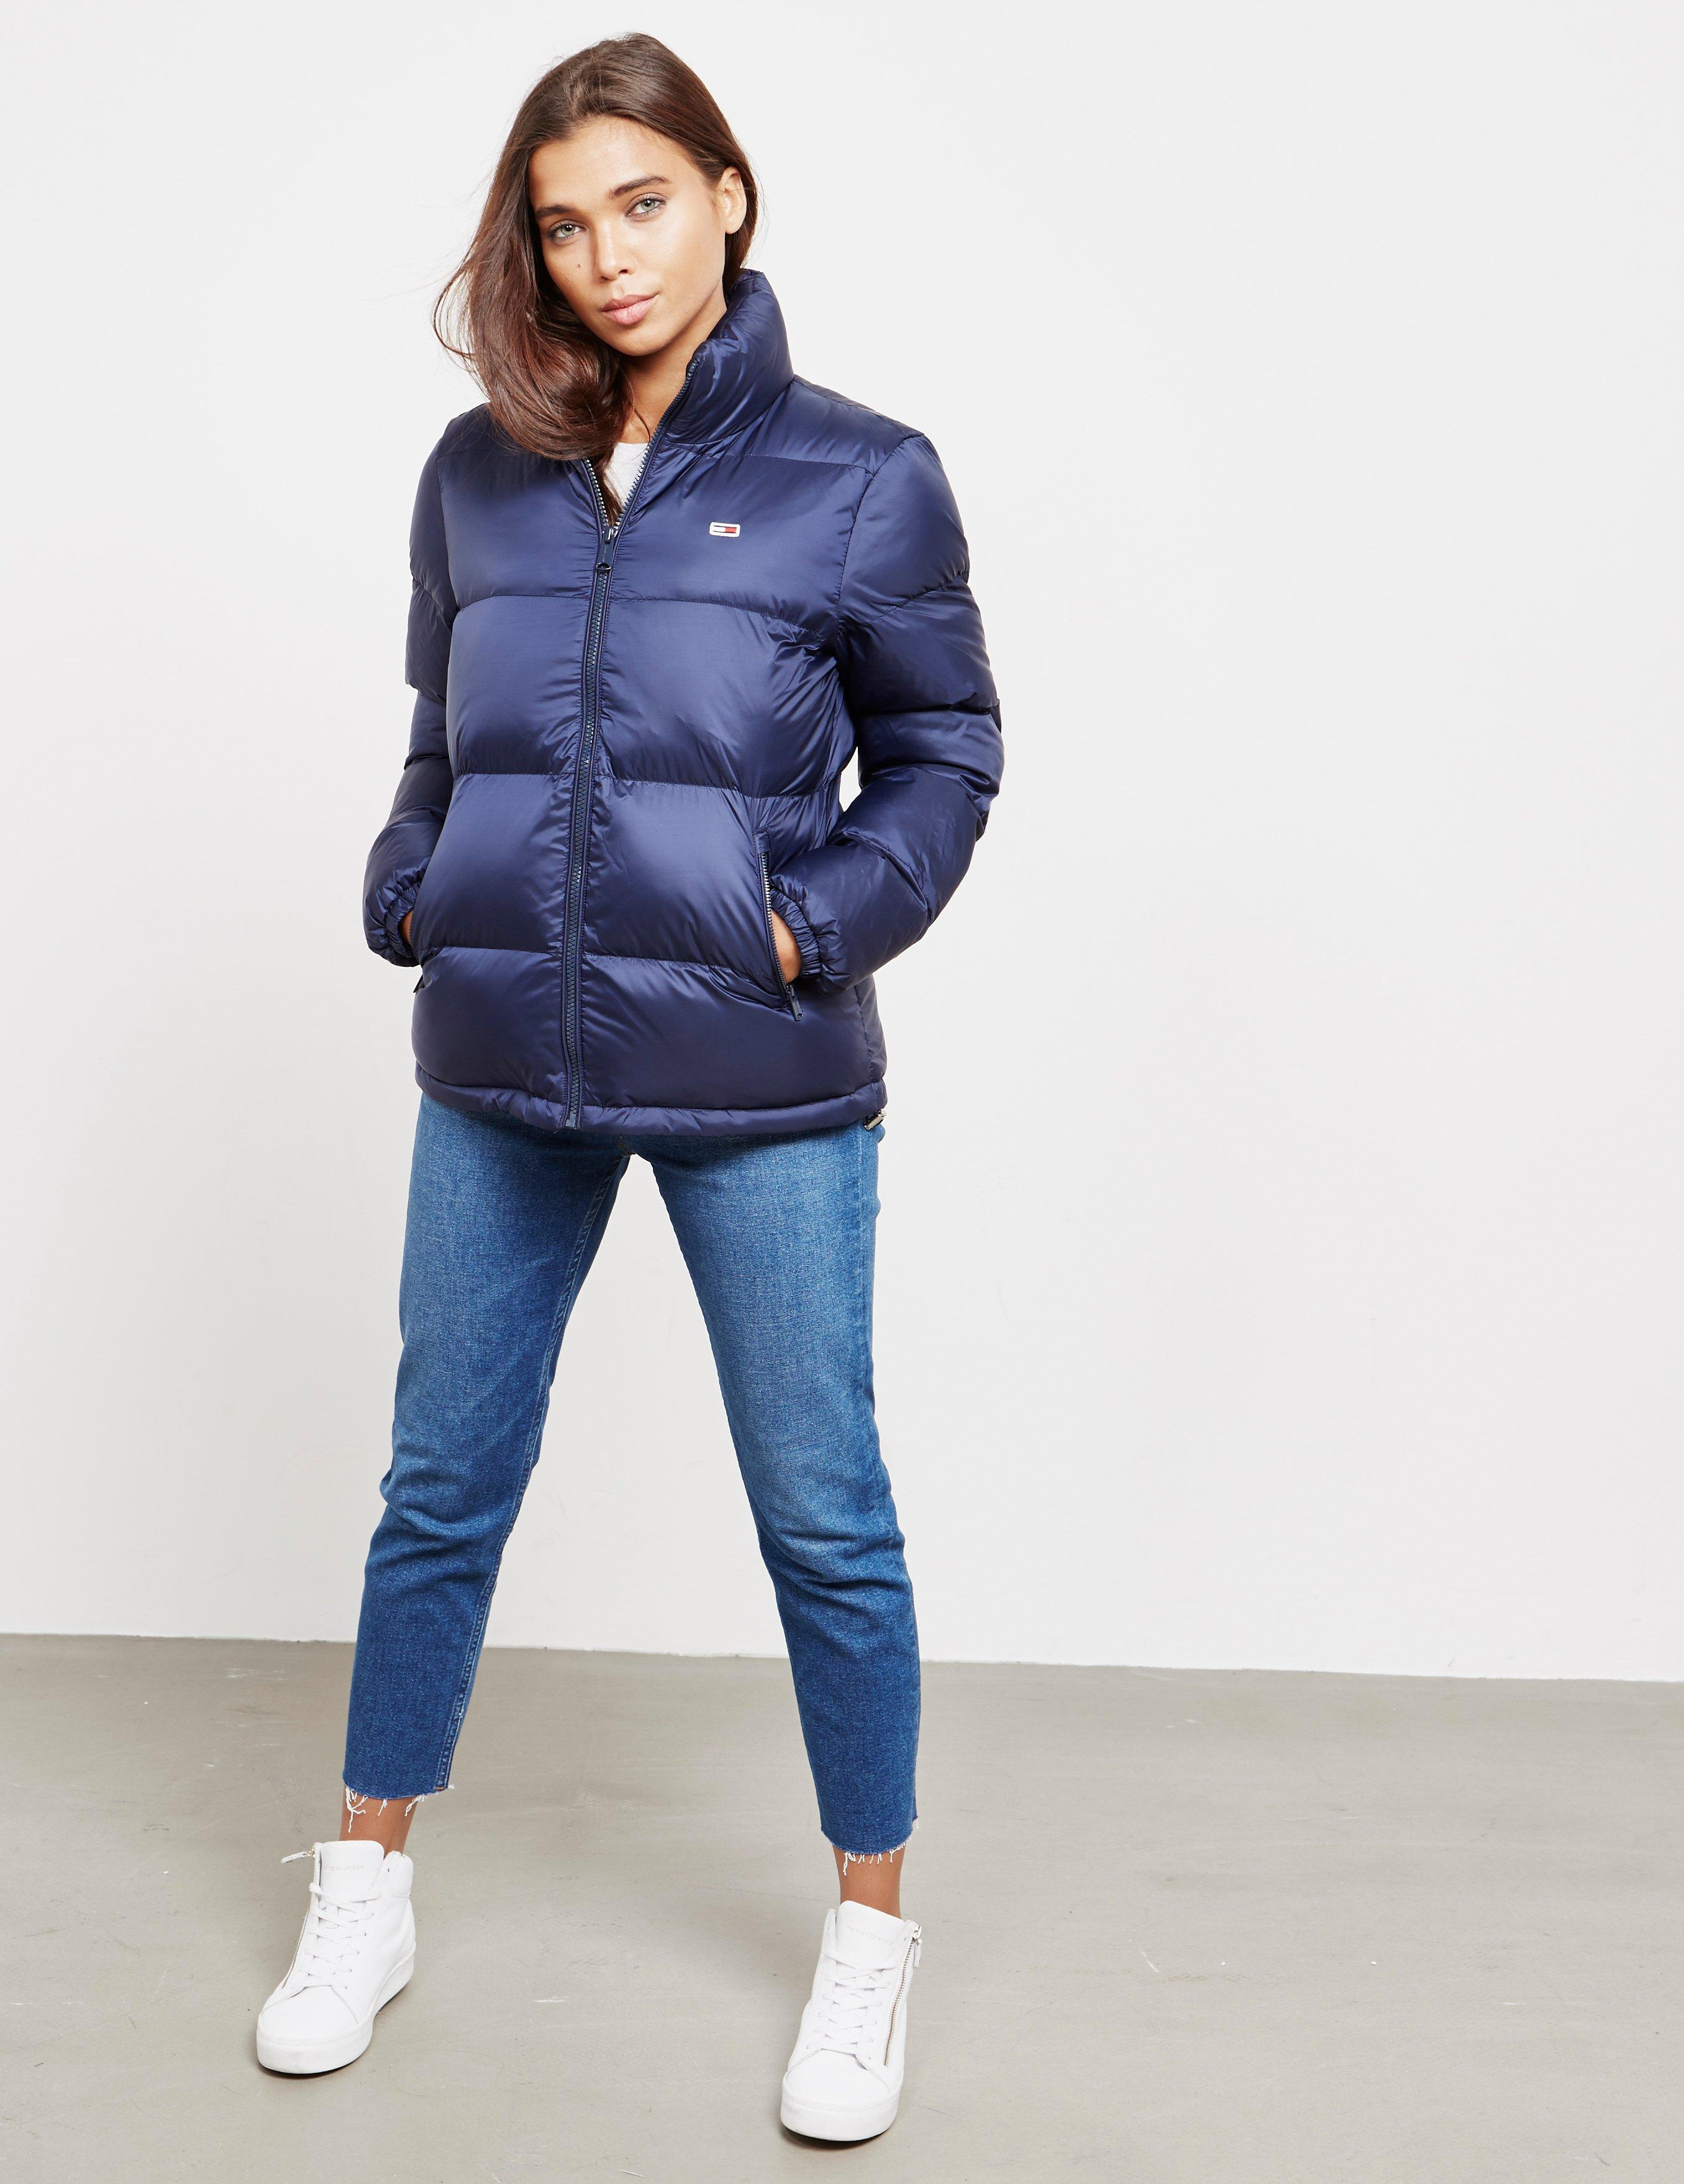 4bc30b33 Lyst - Tommy Hilfiger Womens Padded Jacket Navy Blue in Blue